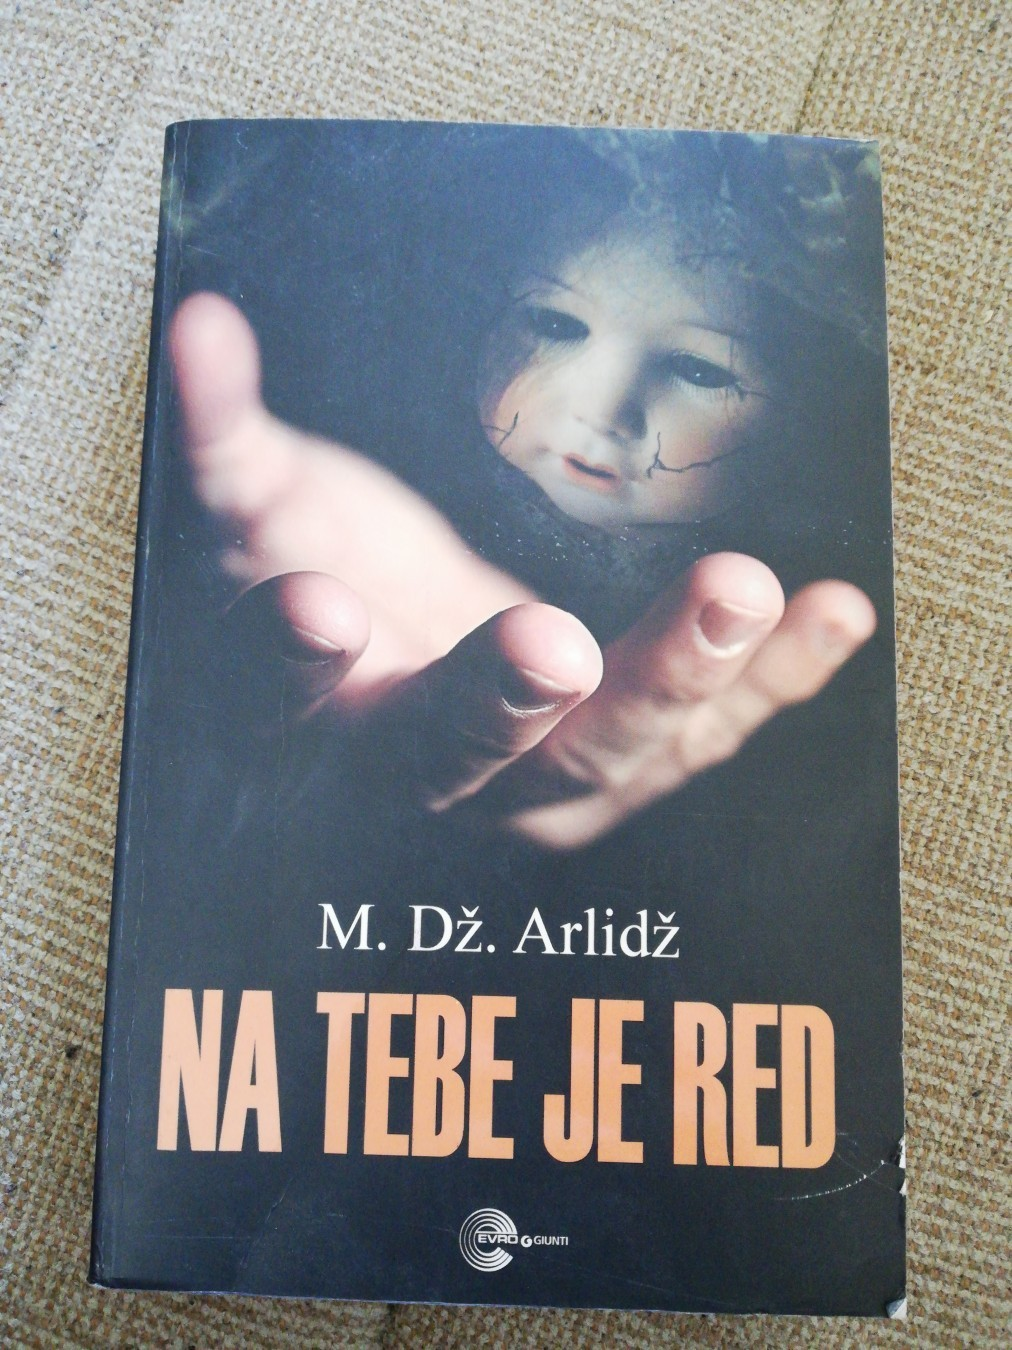 Red tebe